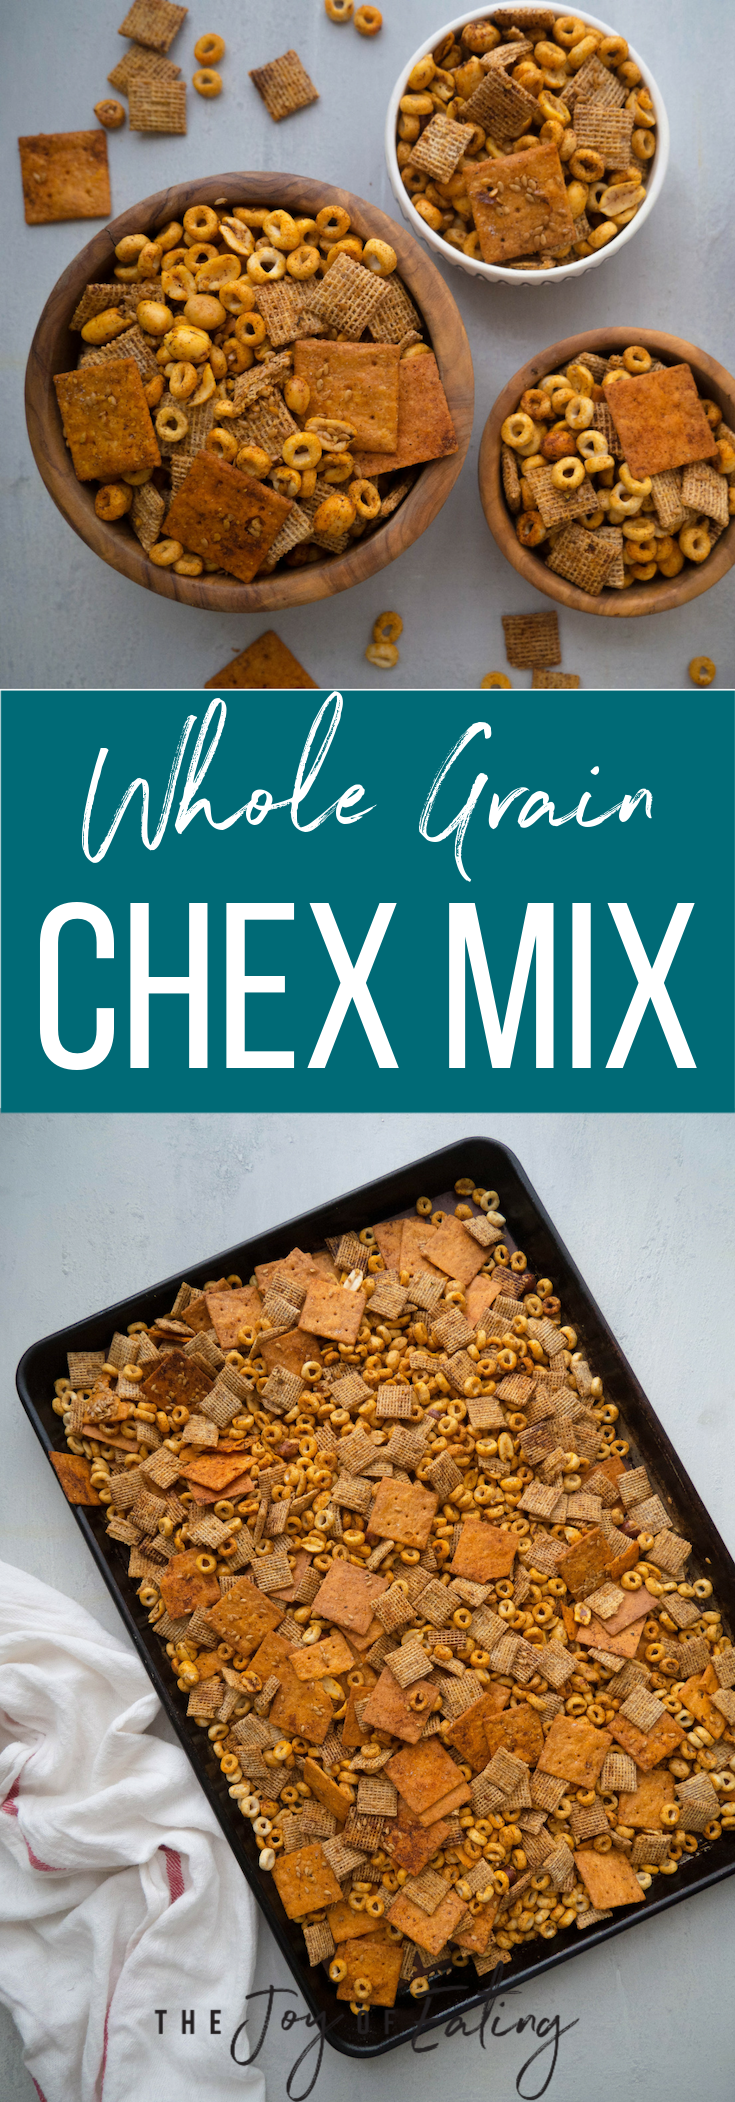 Make this whole grain chex mix as a healthier version of everyone's favorite snack! With fiber from whole grains plus protein and healthy fats from the nuts, it's super satisfying, but still has the same smoky and spicy blend of spices that makes chex mix so addictively good! #snack #chexmix #healthysnack #holiday #peanut #healthyrecipe